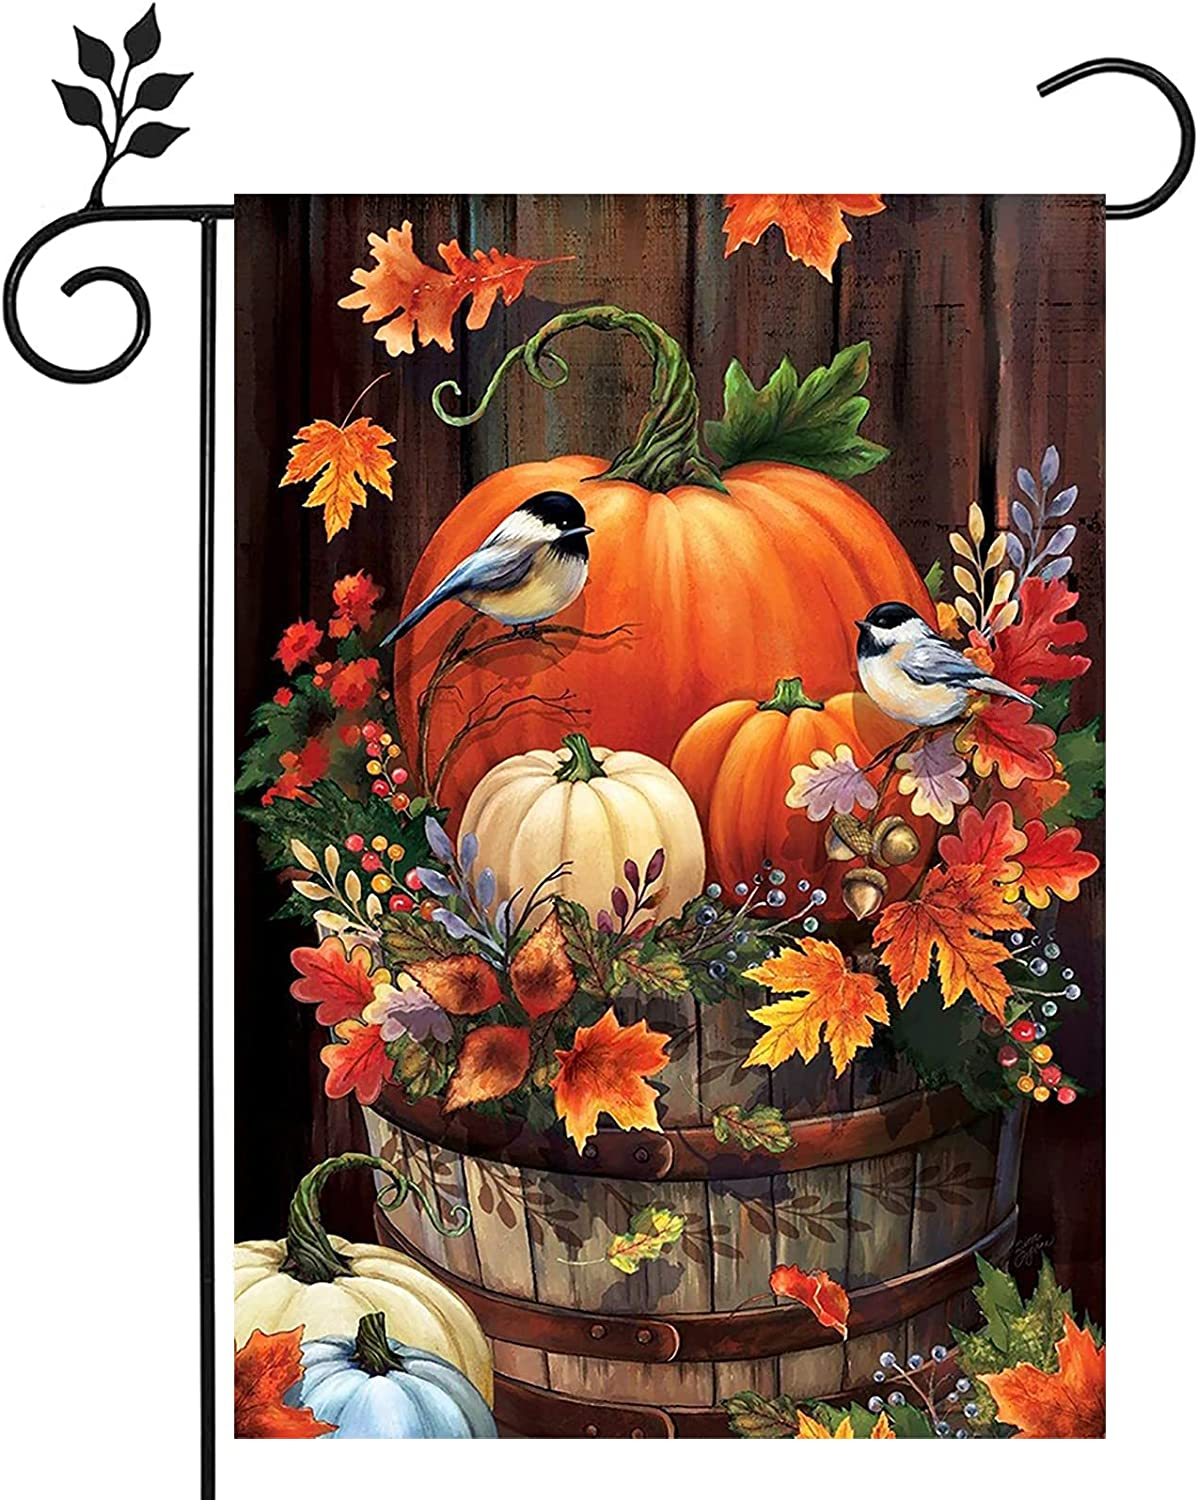 Fall Garden Flags Decorations for Home Outdoor,Yard Flags Decor 12 X 18 Inch Double Sided,Halloween Thanksgiving Pumpkins Bird Garden Flag Front Porch Decorations